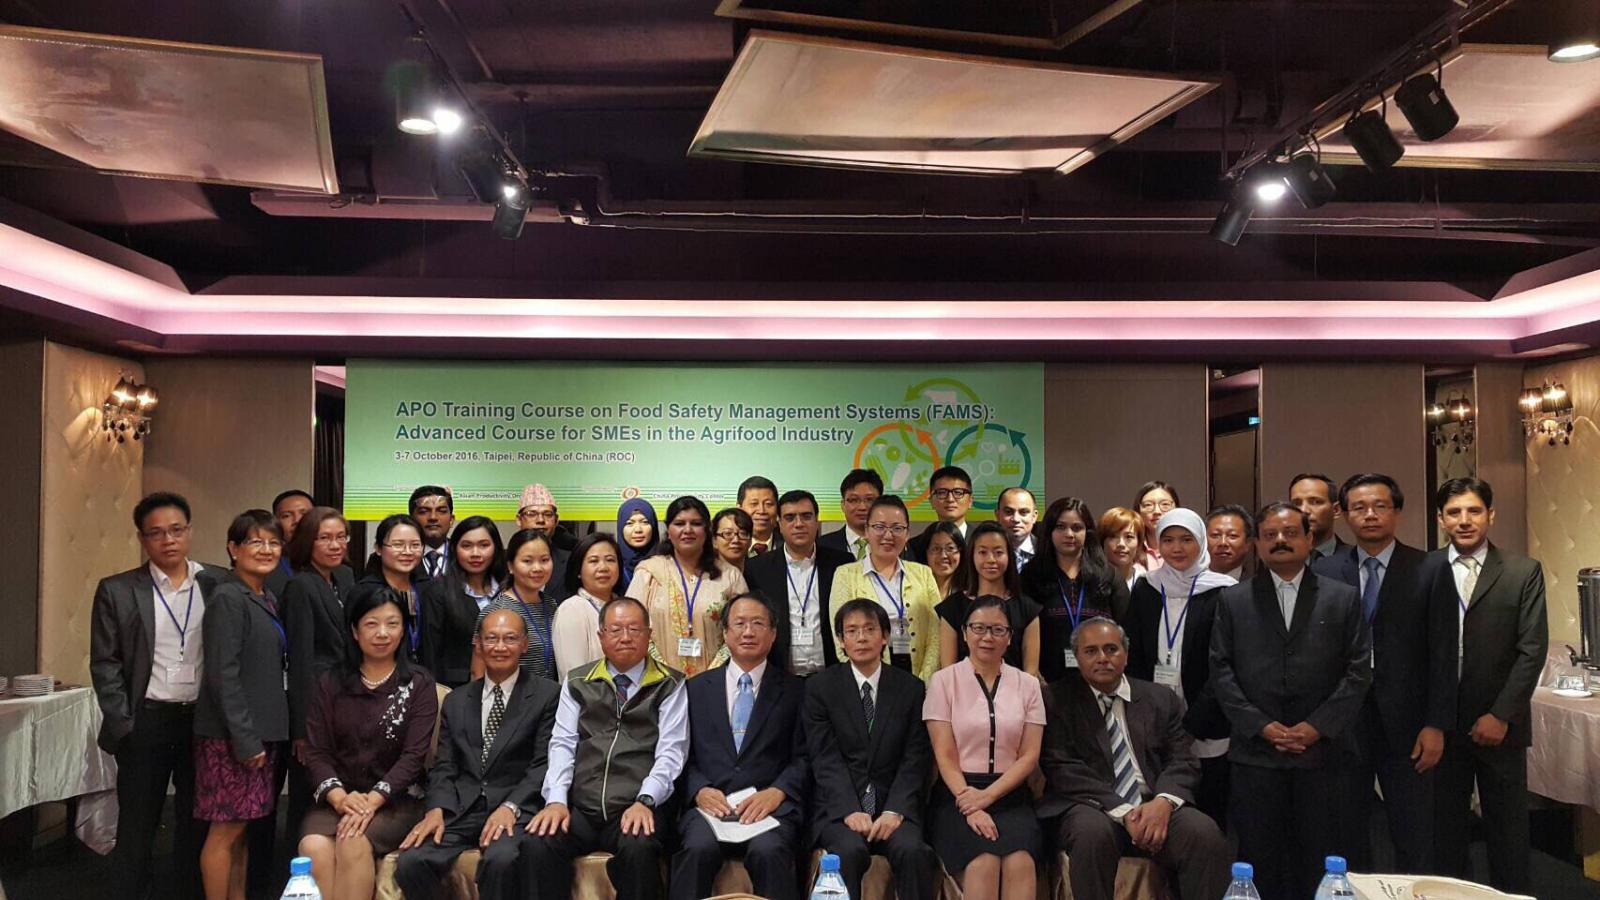 Advance Course for SMEs in the Agrifood Industry Jointly with APO and APAARI